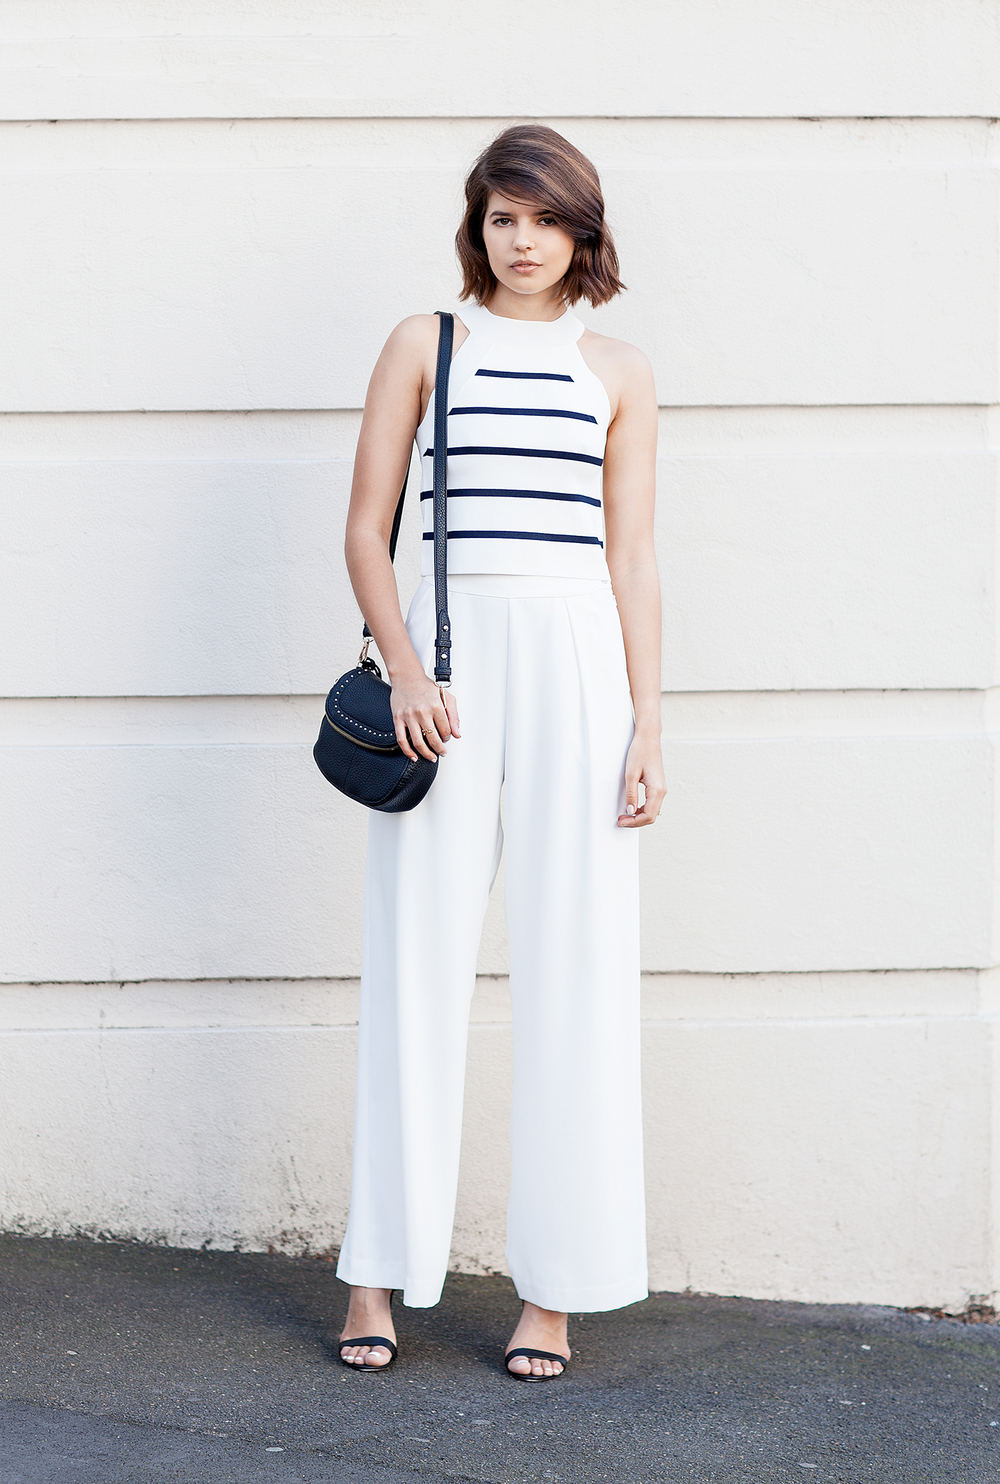 Riviera: A Summery Take On Monochrome